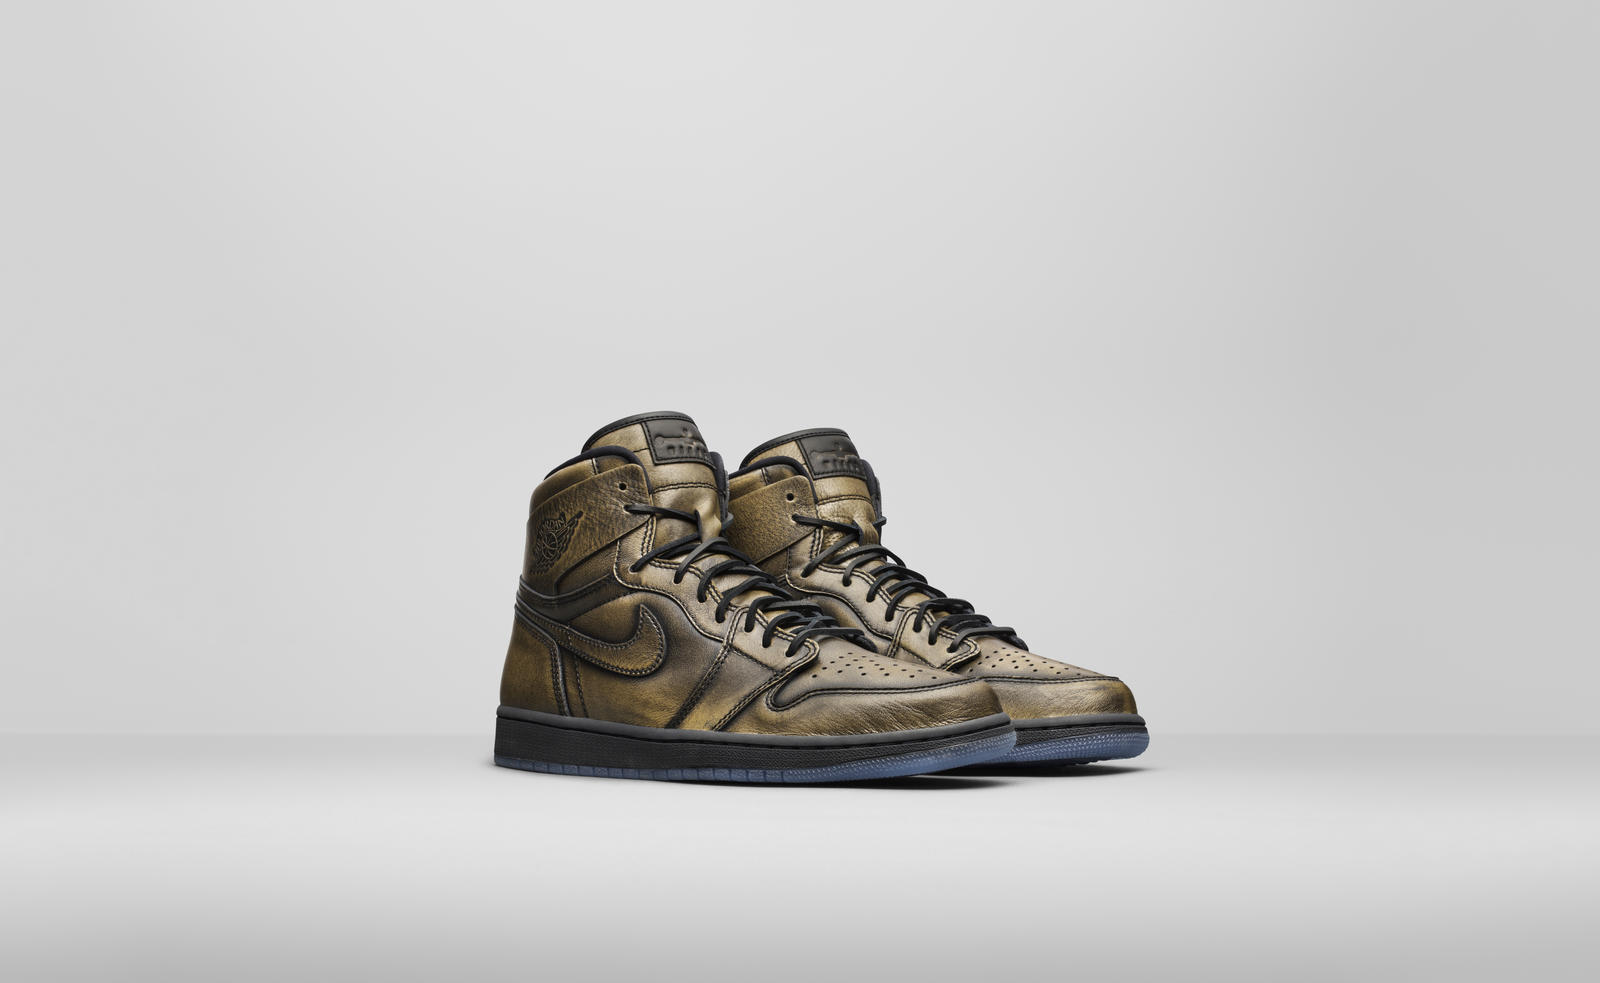 d18e92d9474 Belief from within 3. Air Jordan Retro I Wings